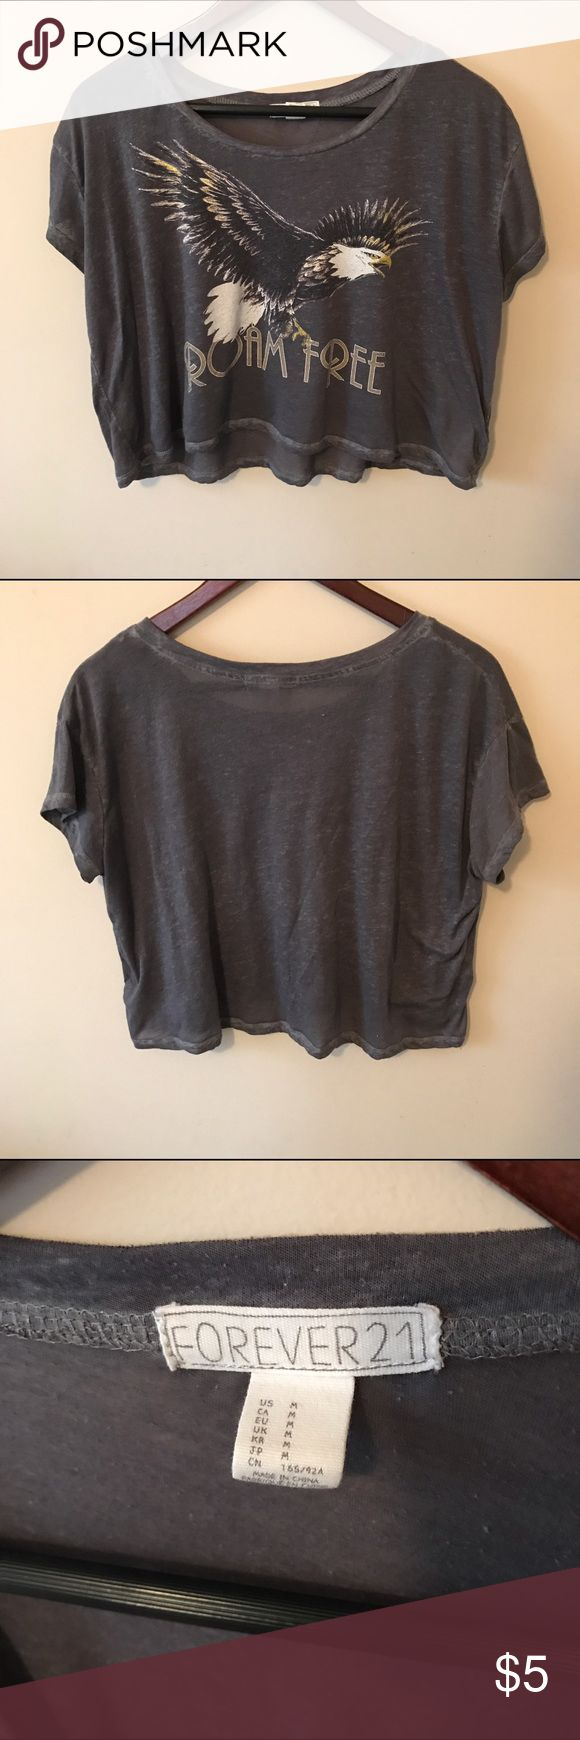 Forever 21 Cropped Tee Thinner material. Very light. Worn a few times. Discount if you bundle! :) Forever 21 Tops Crop Tops